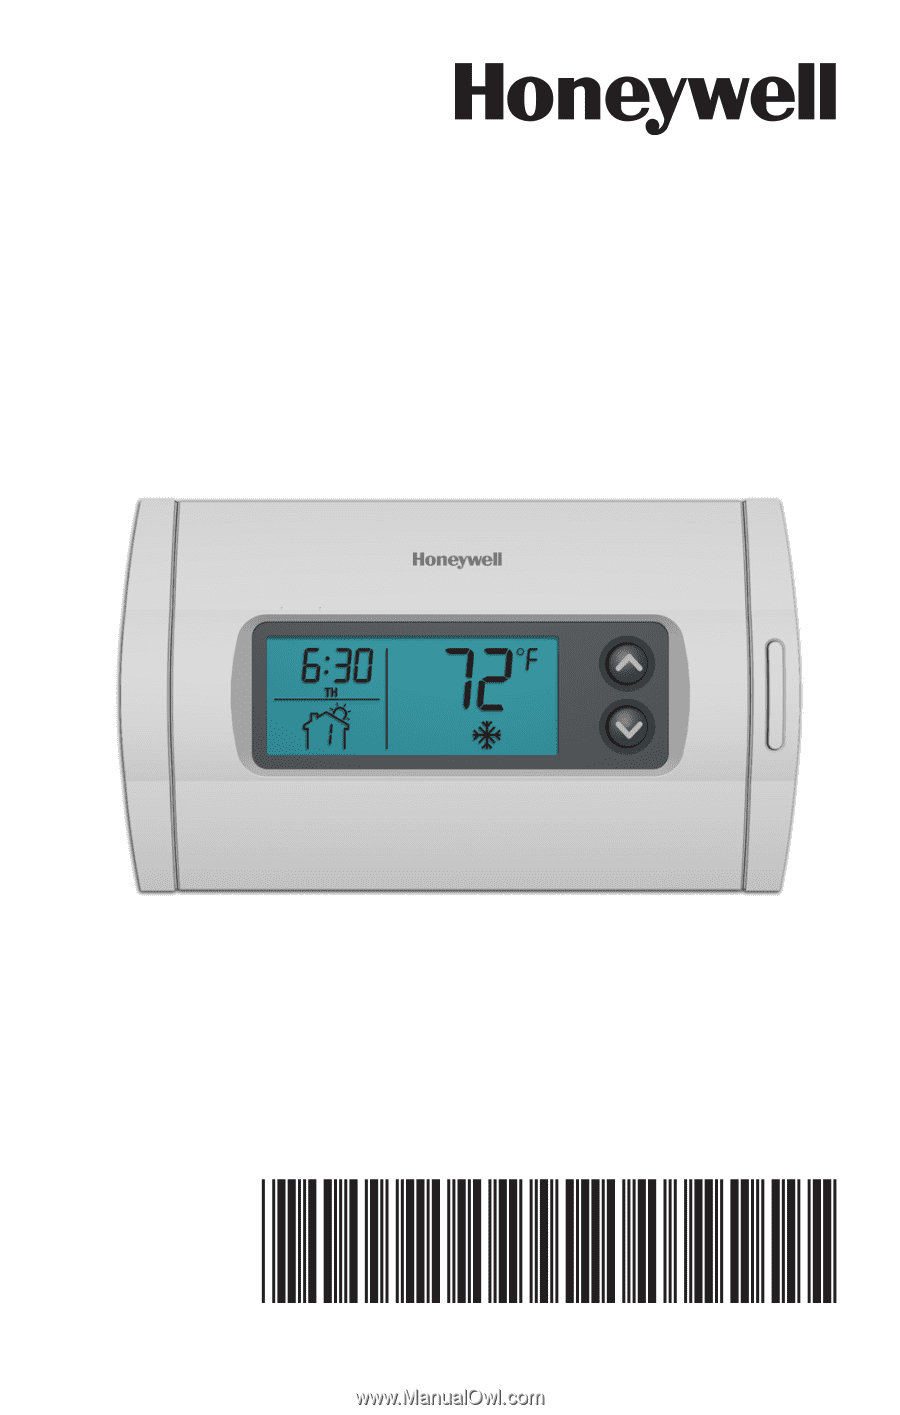 honeywell thermostat rth2300b1012 user manual